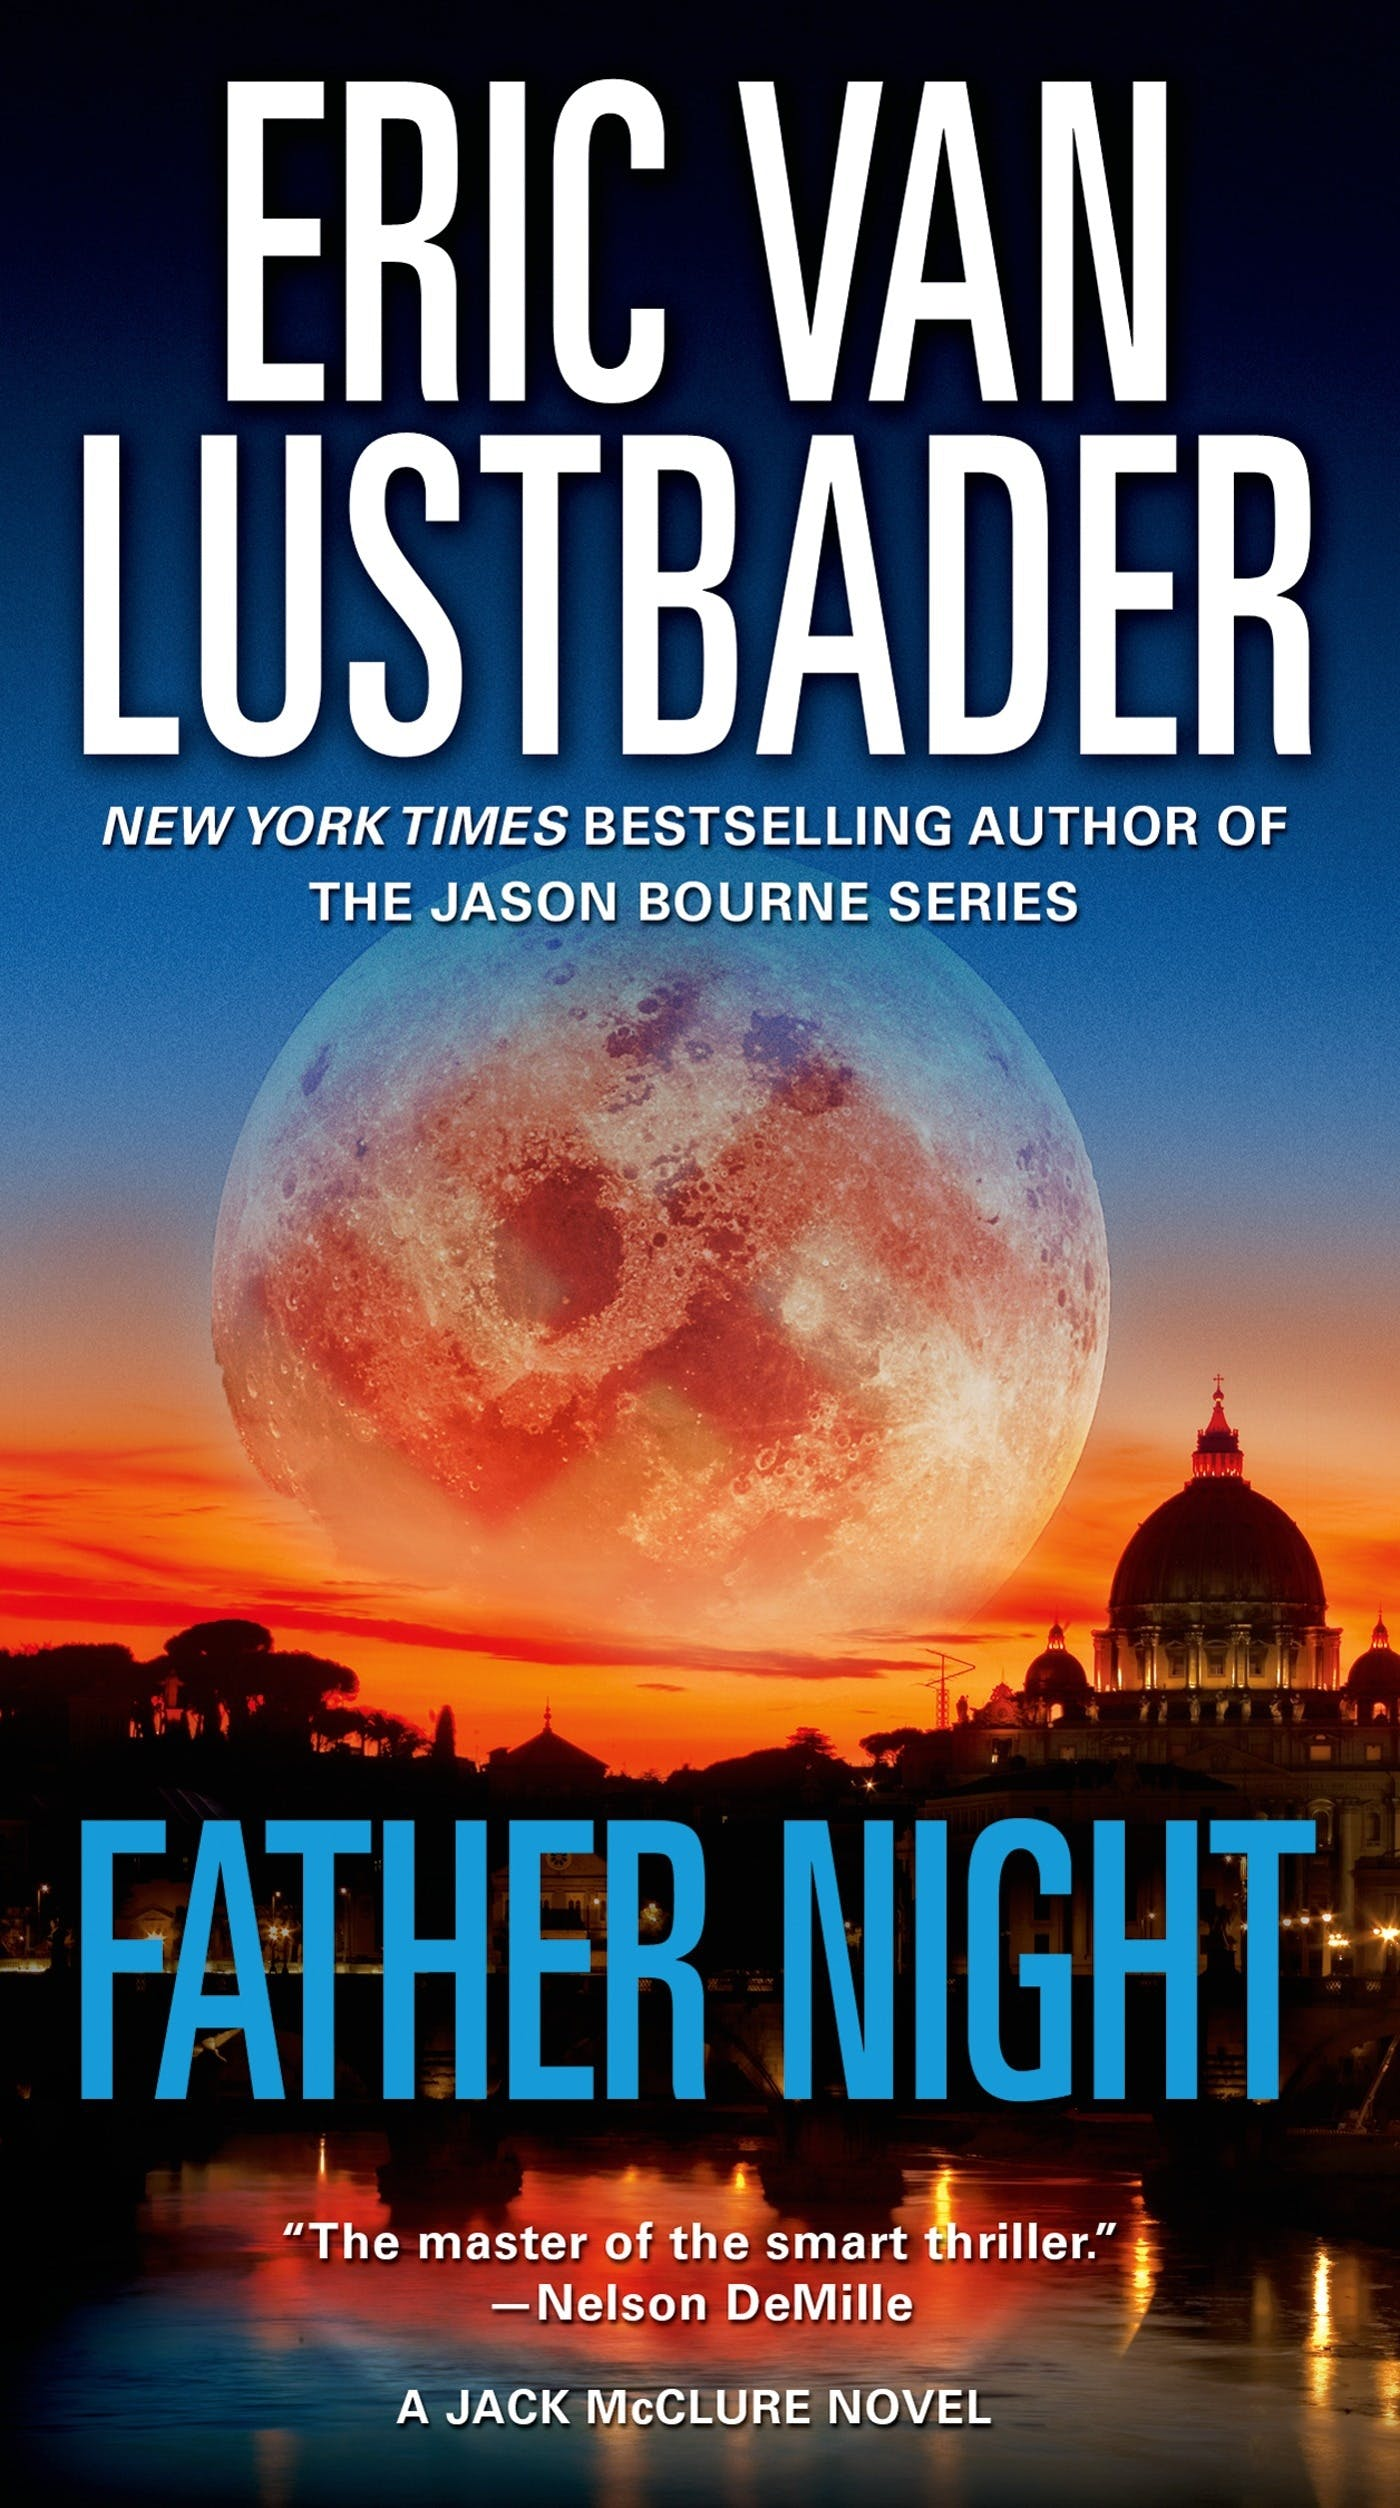 Image of Father Night